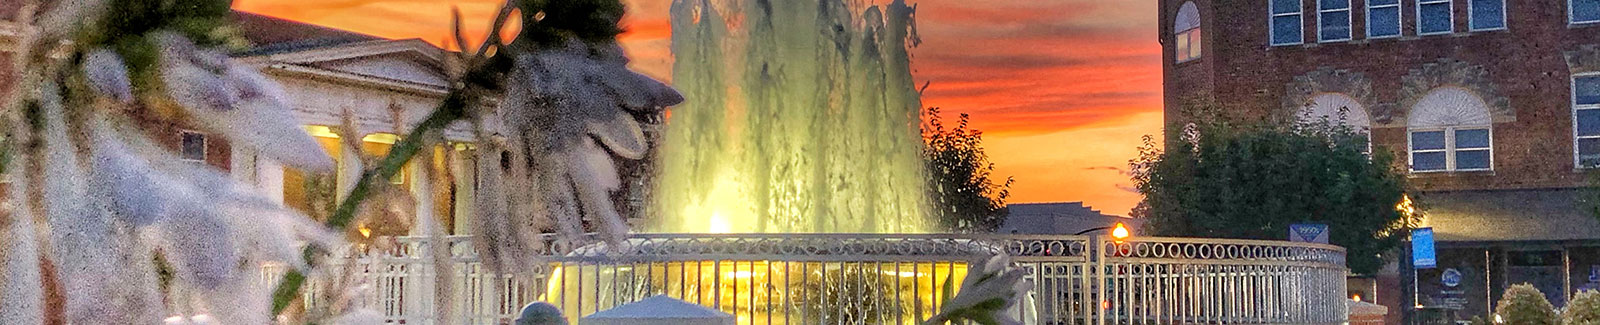 water fountain at sunset in downtown